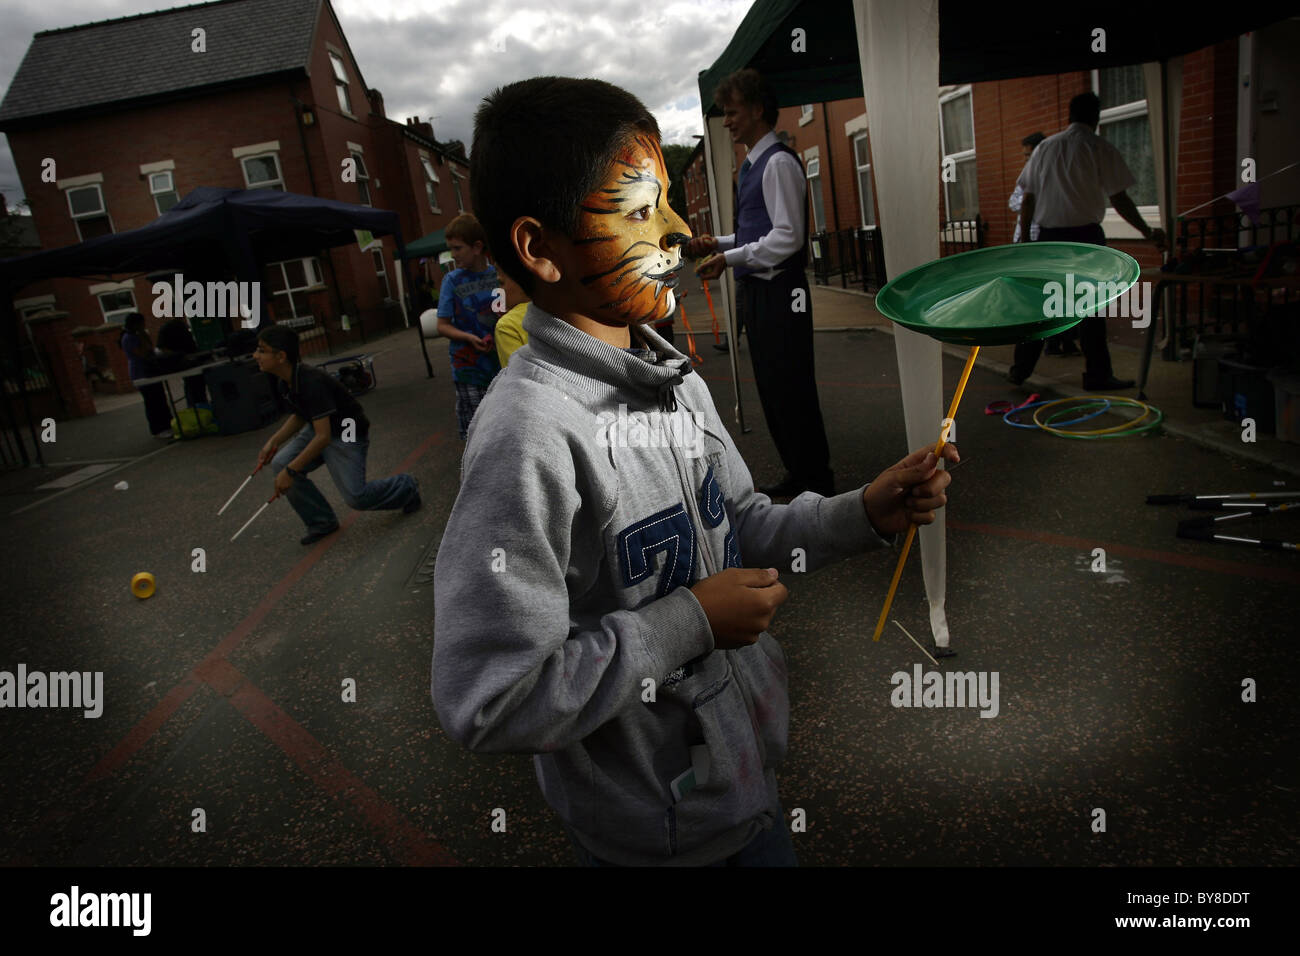 boy with painted face spins a plate at a fun day - Stock Image